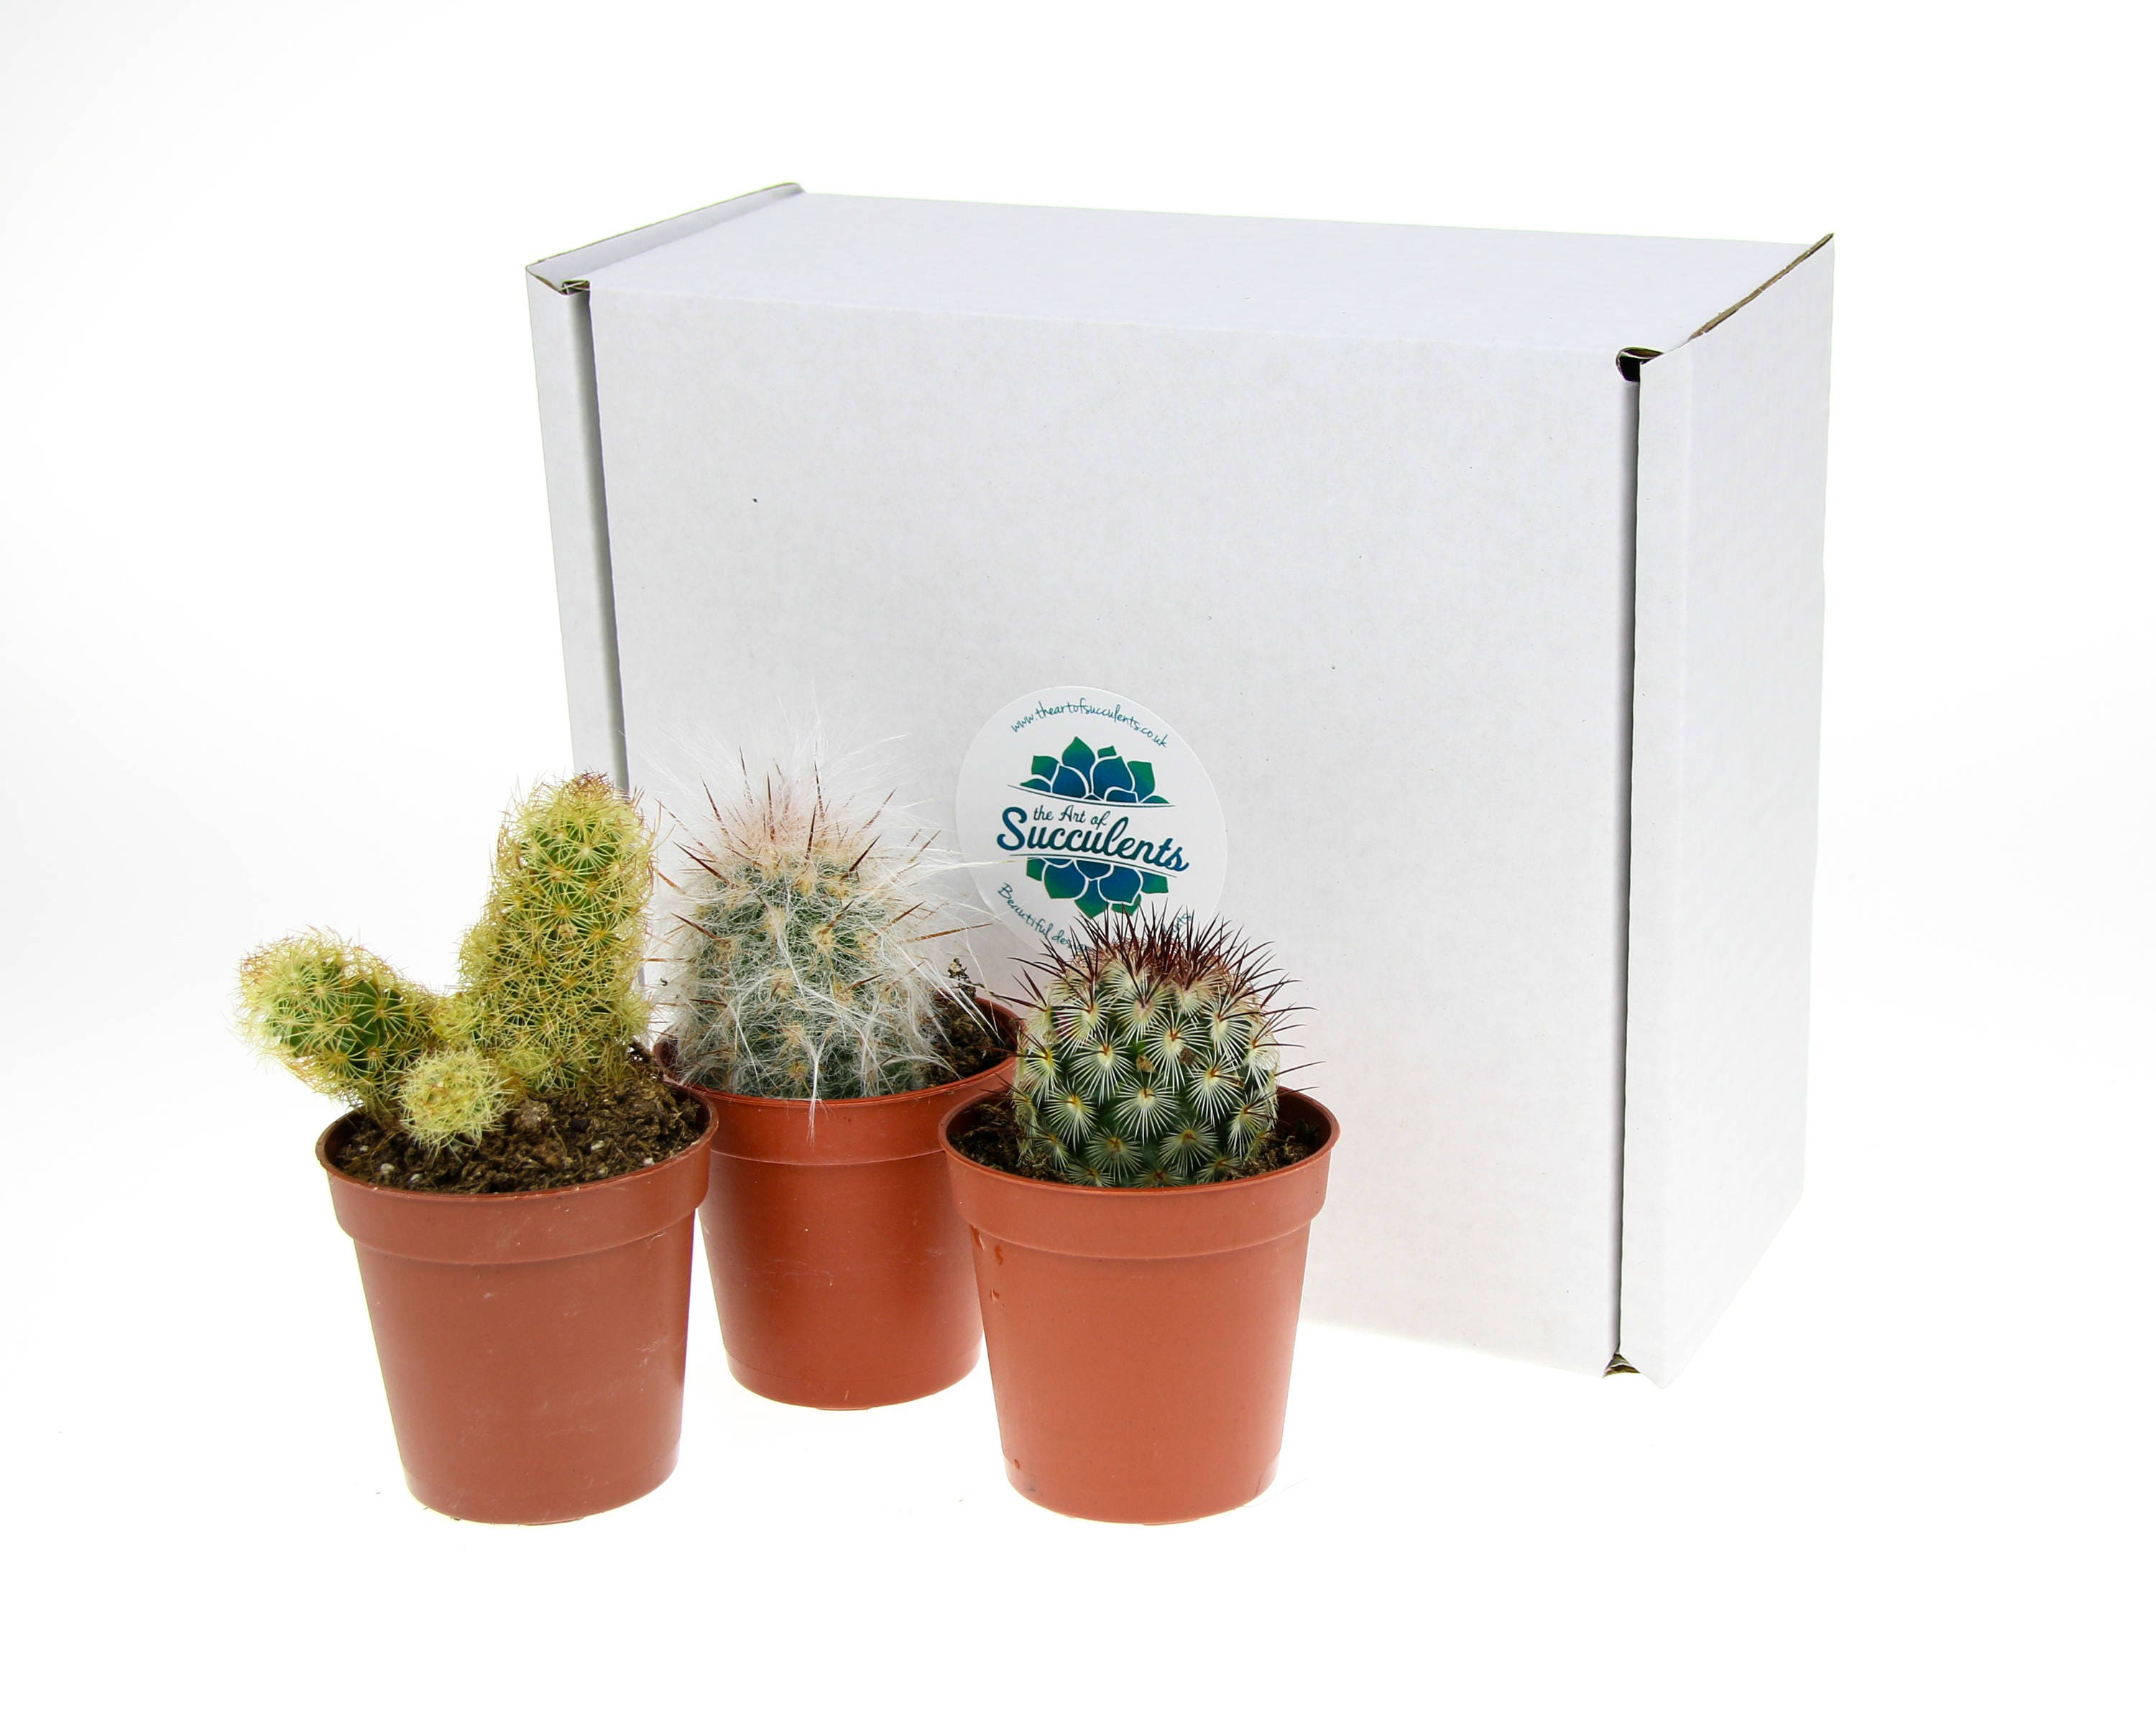 3 X Small Cactus Plant Selection Cactus Plants For Etsy